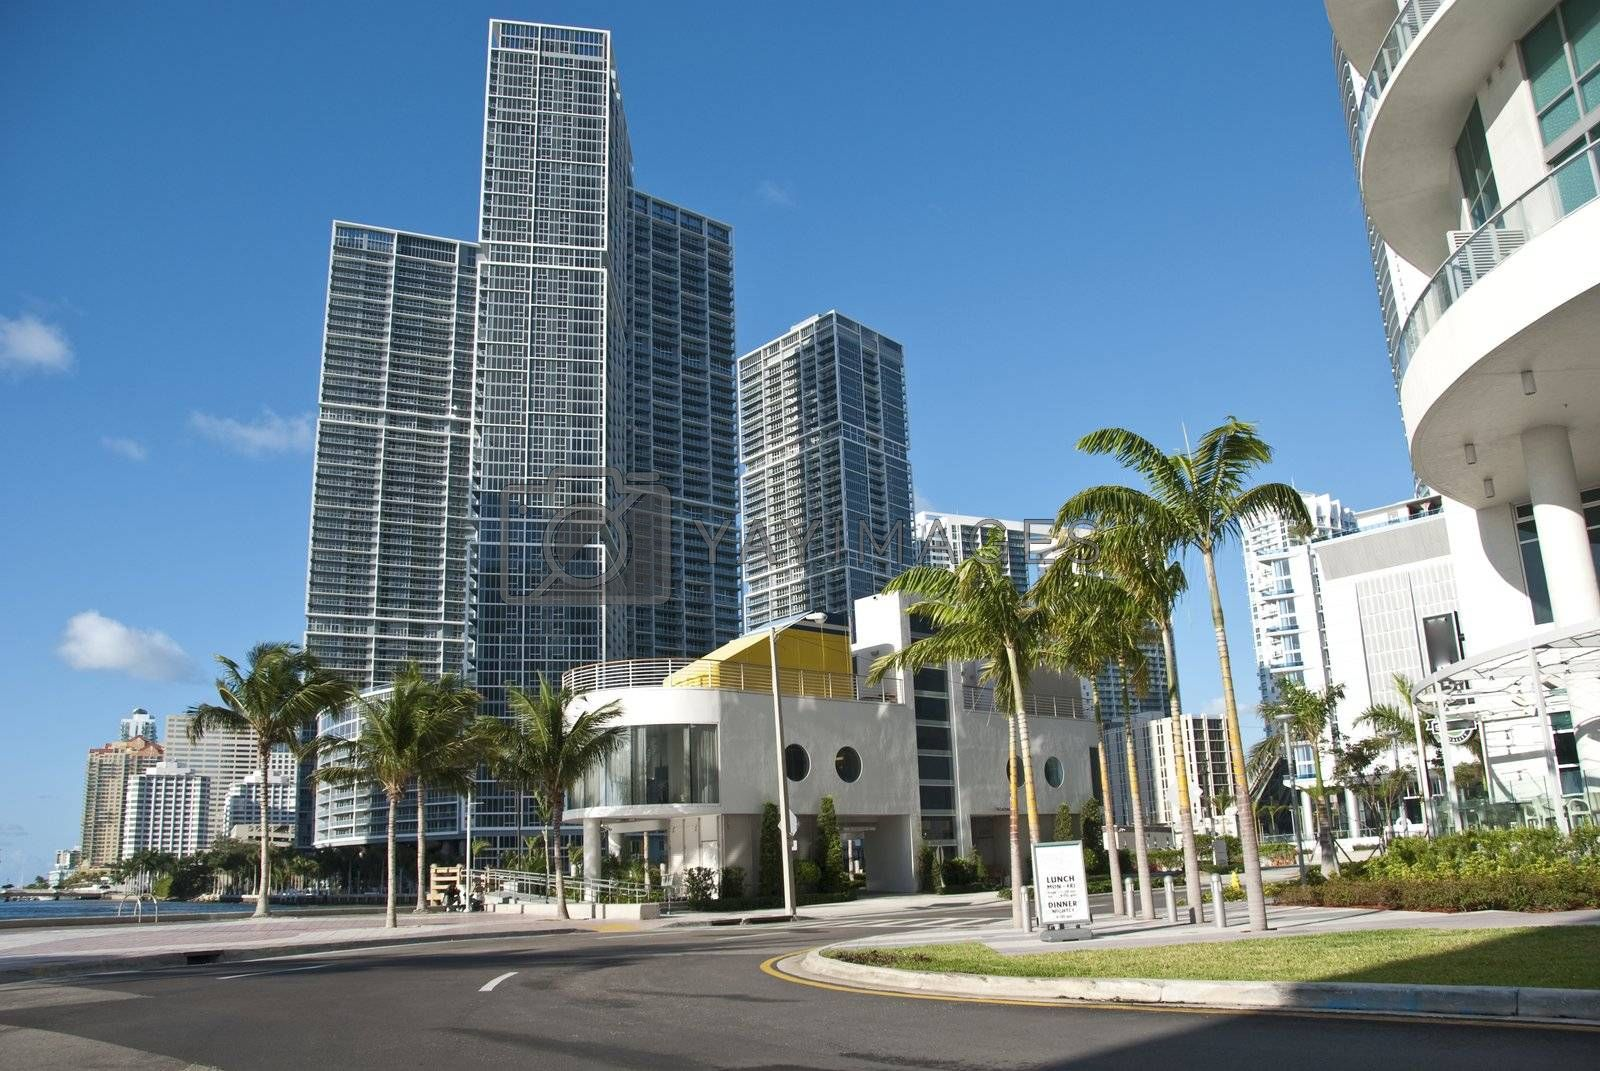 Miami, Florida, on a Hot and Sunny Spring Morning by jovannig